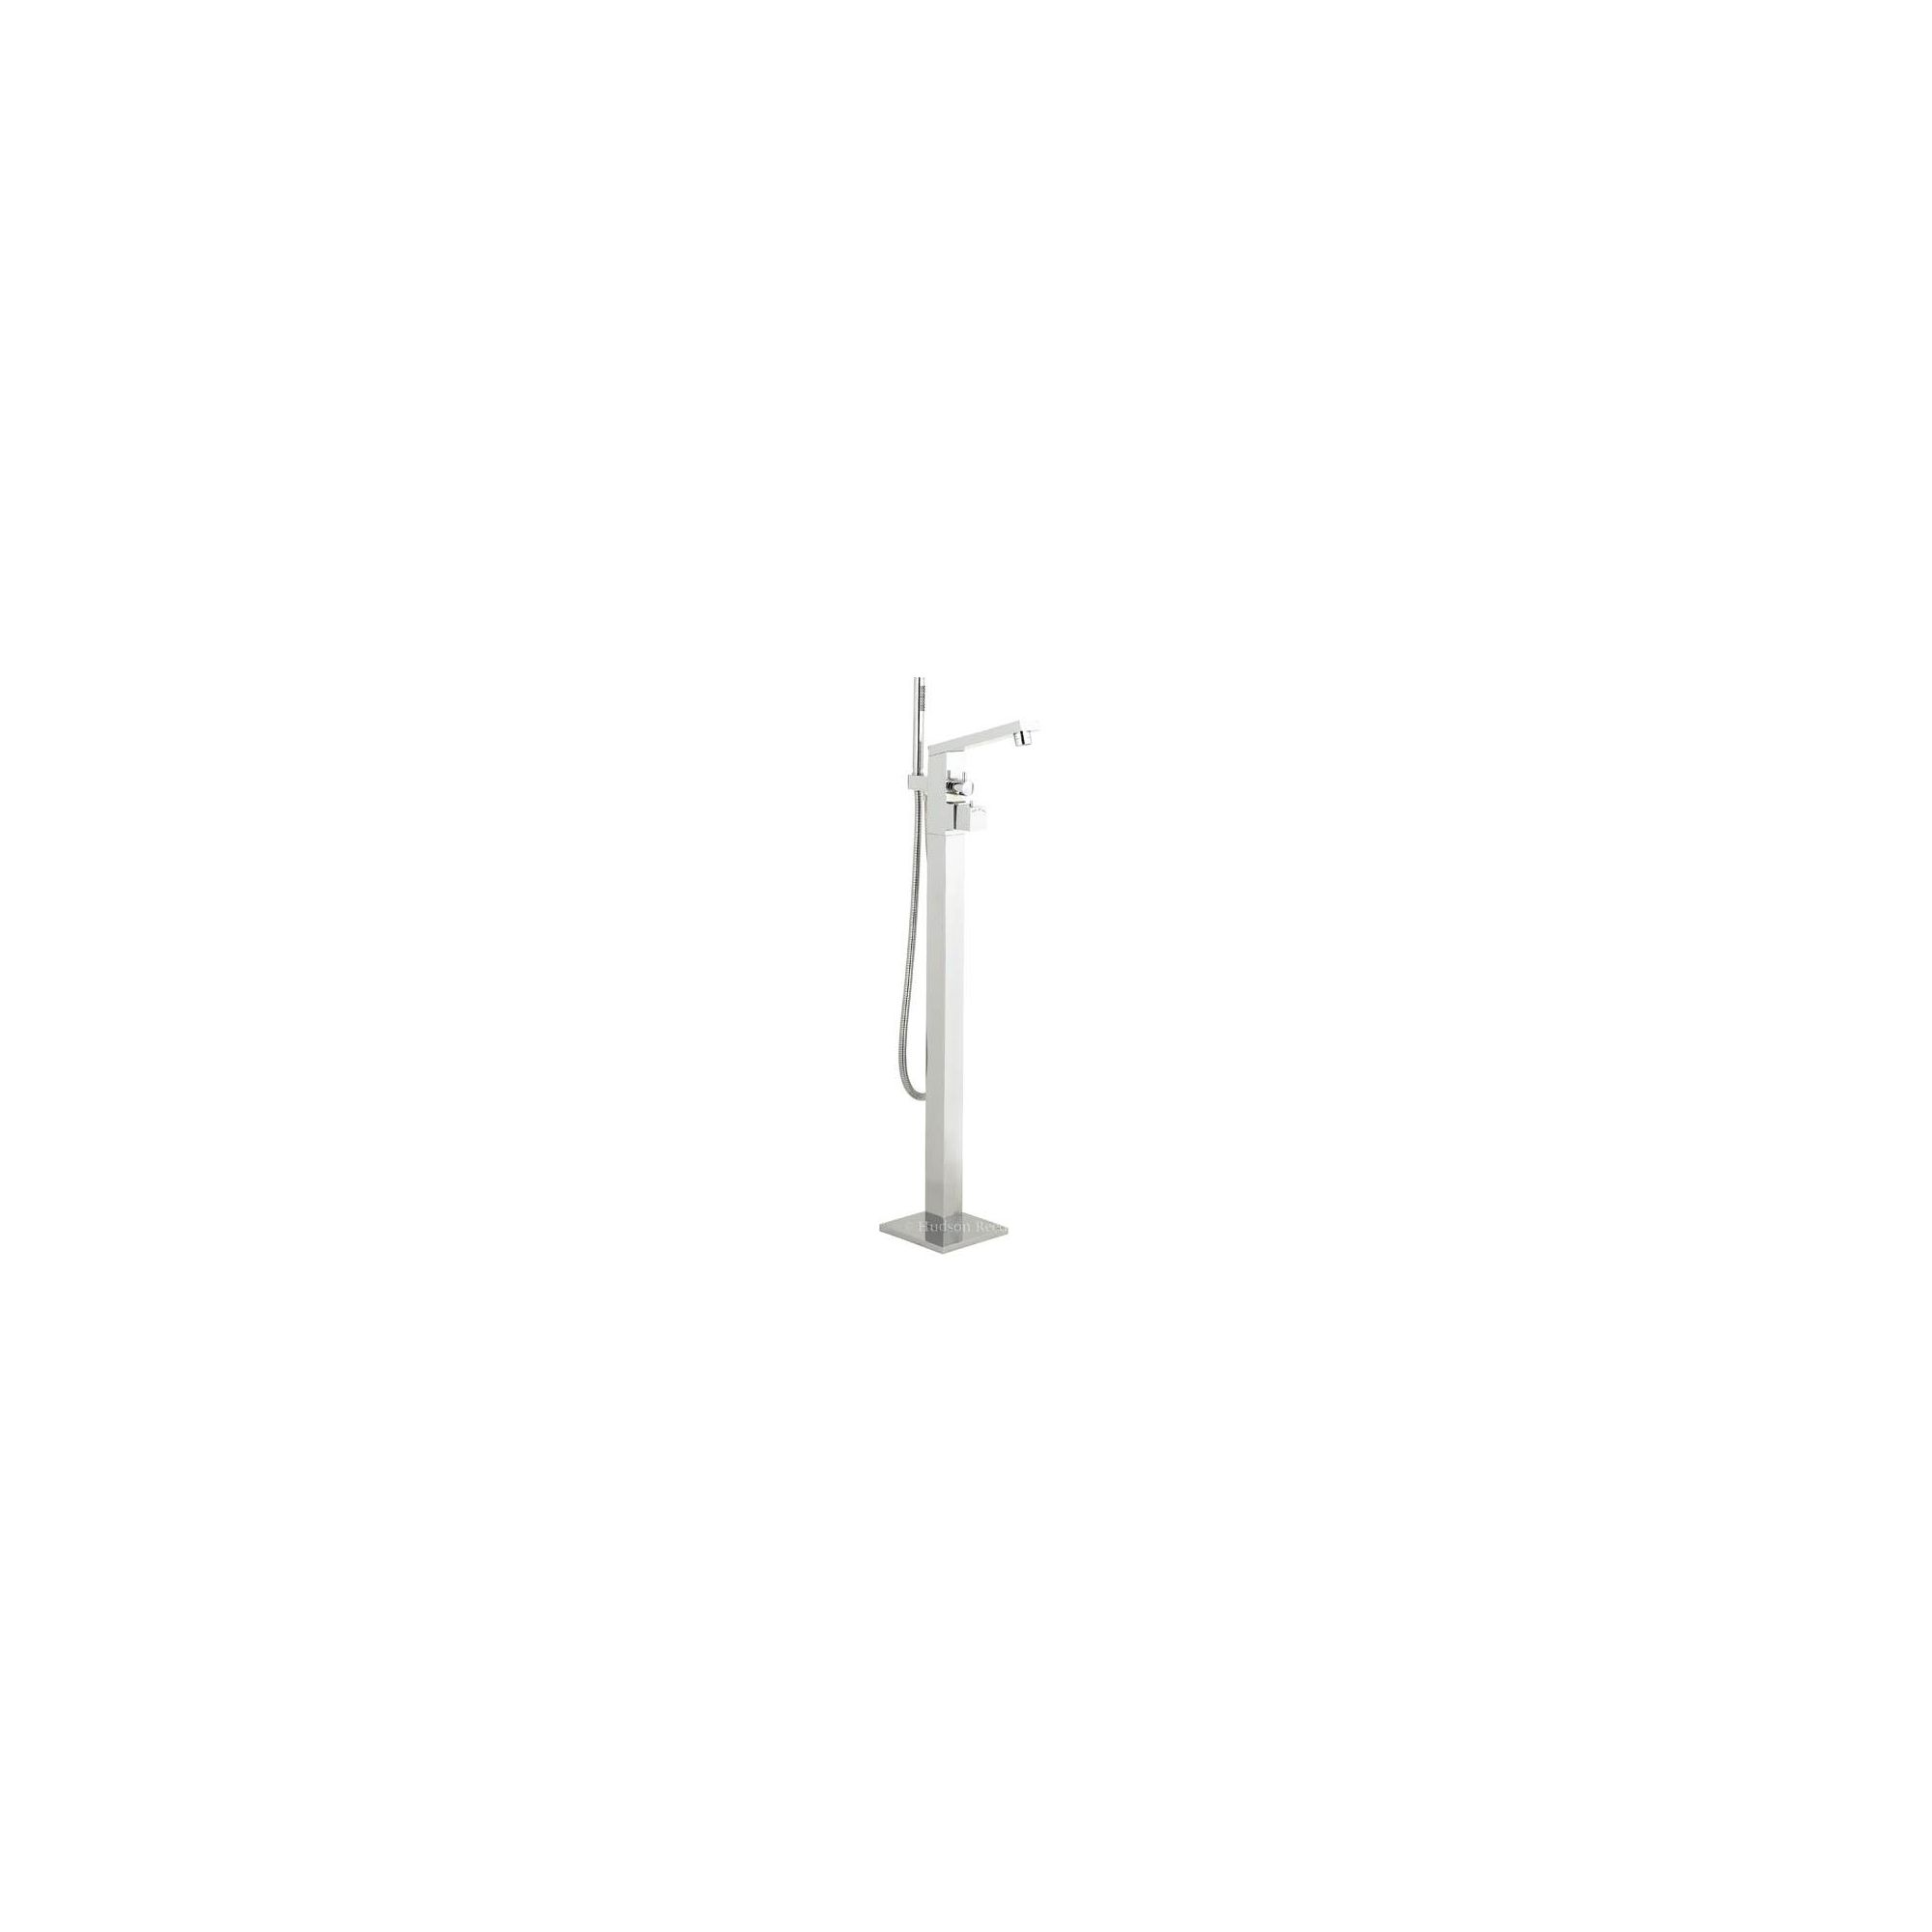 Hudson Reed Kubix Freestanding Thermostatic Bath Shower Mixer Tap at Tescos Direct